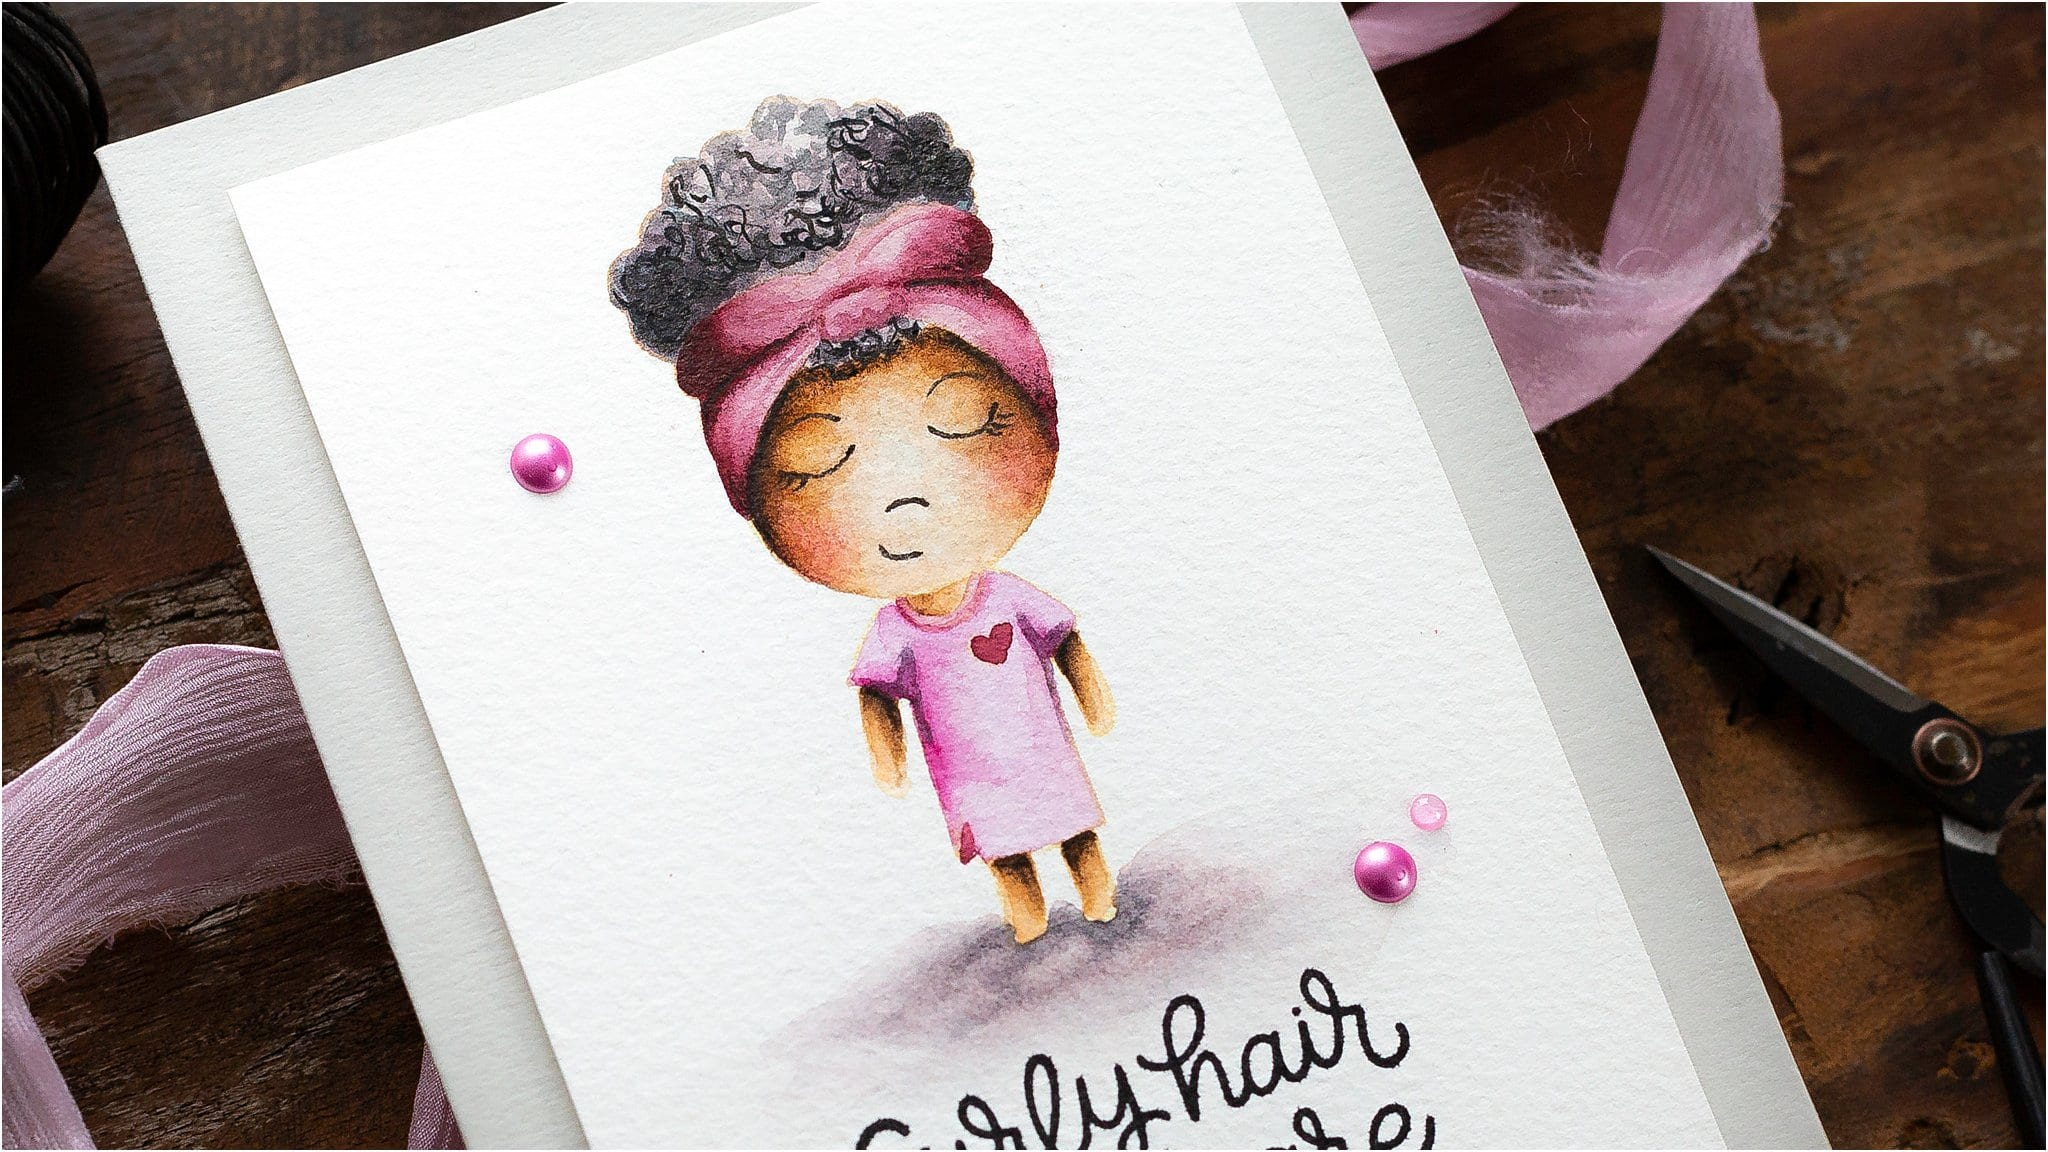 Video tutorial watercolouring curly hair for this handmade affirmative self care card by Debby Hughes using supplies from Simon Says Stamp #watercolor #homemade